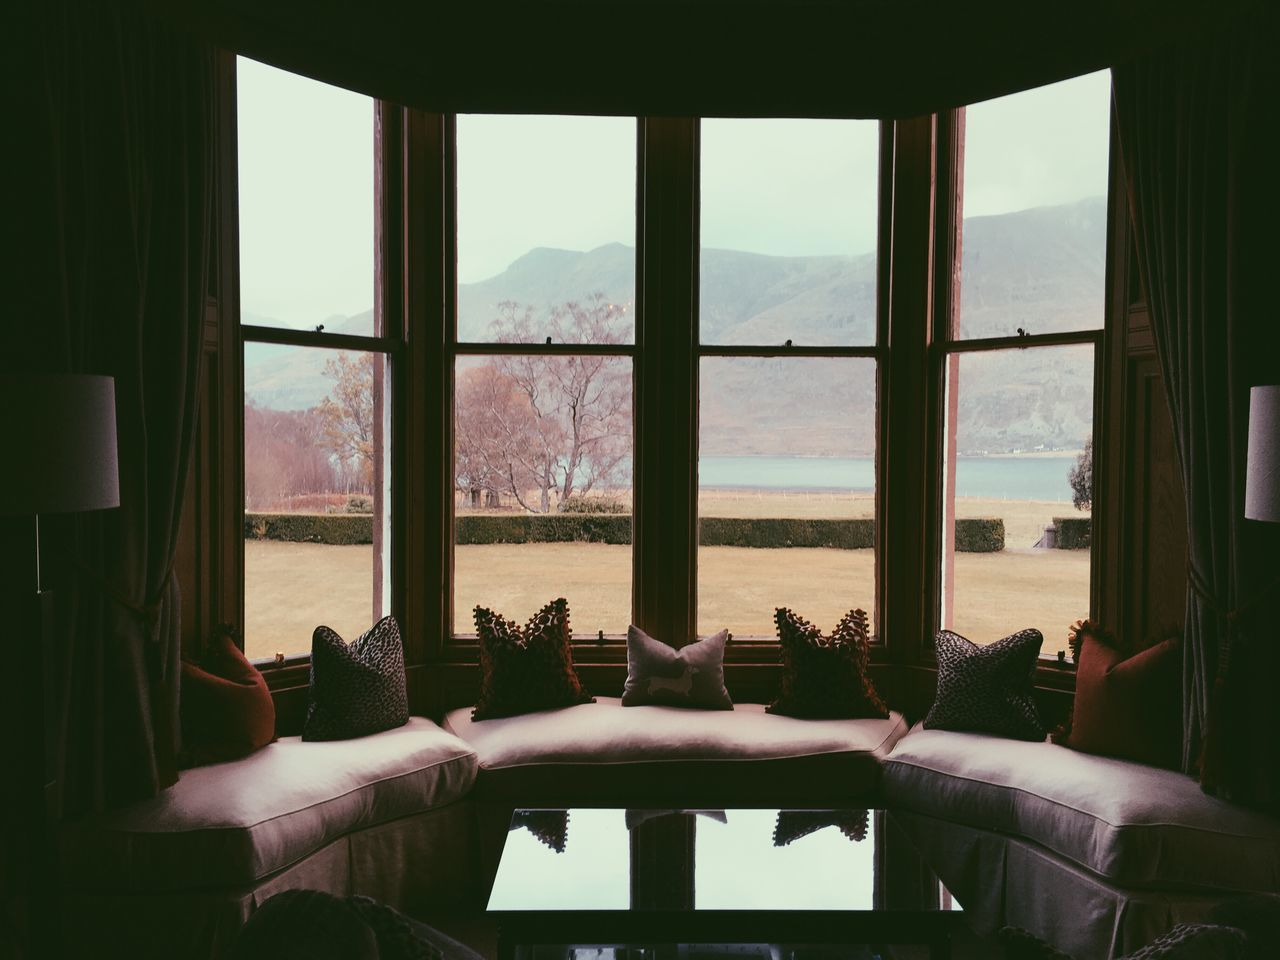 window, indoors, relaxation, day, water, nature, sky, architecture, no people